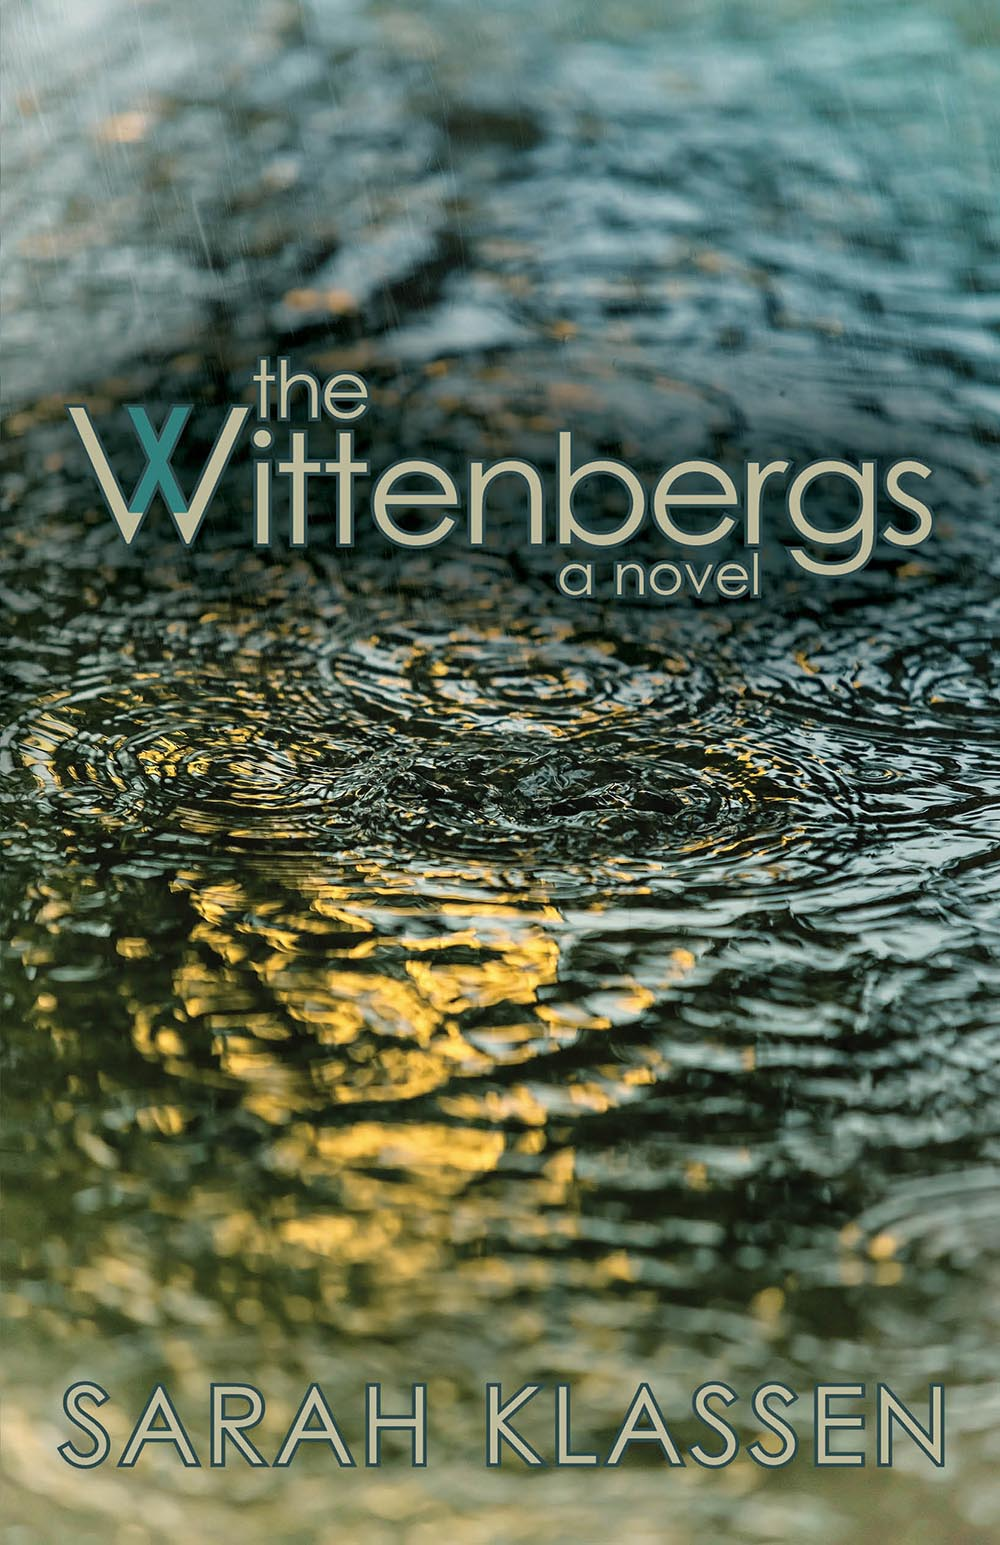 The Wittenbergs by Sarah Klassen